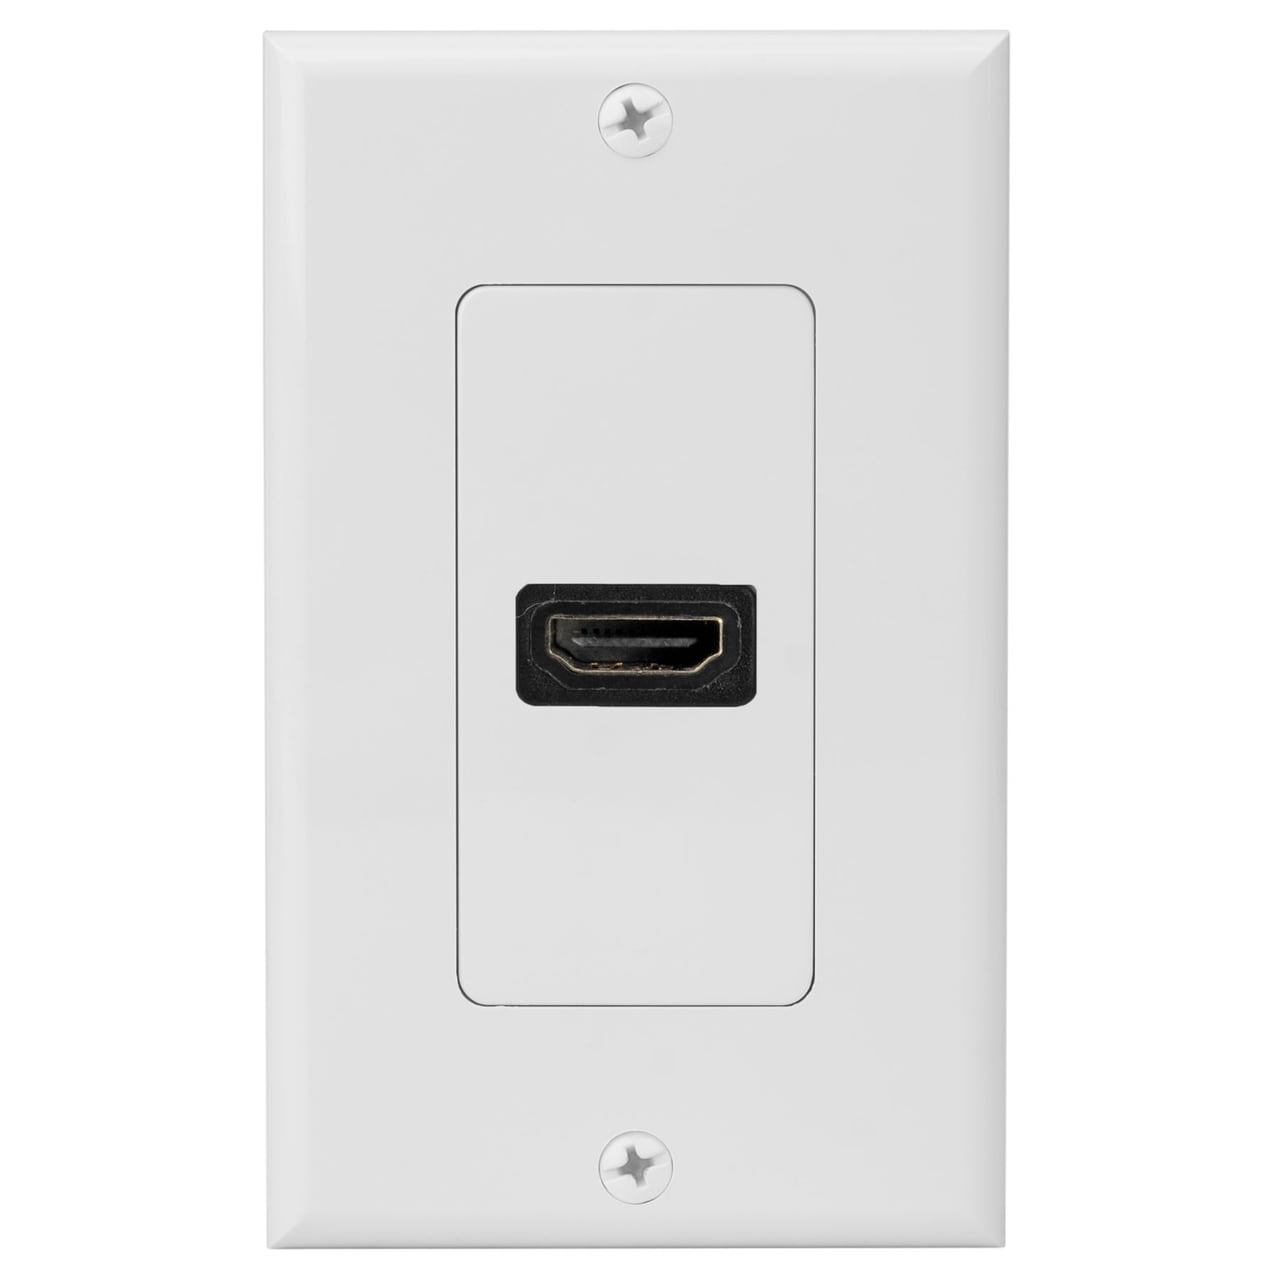 Hdmi Outlet 4xem 4xwallhdmi1 4xem 1 Port Outlet Female Hdmi Wall Plate White 1 Gang White 1 X Hdmi Port S